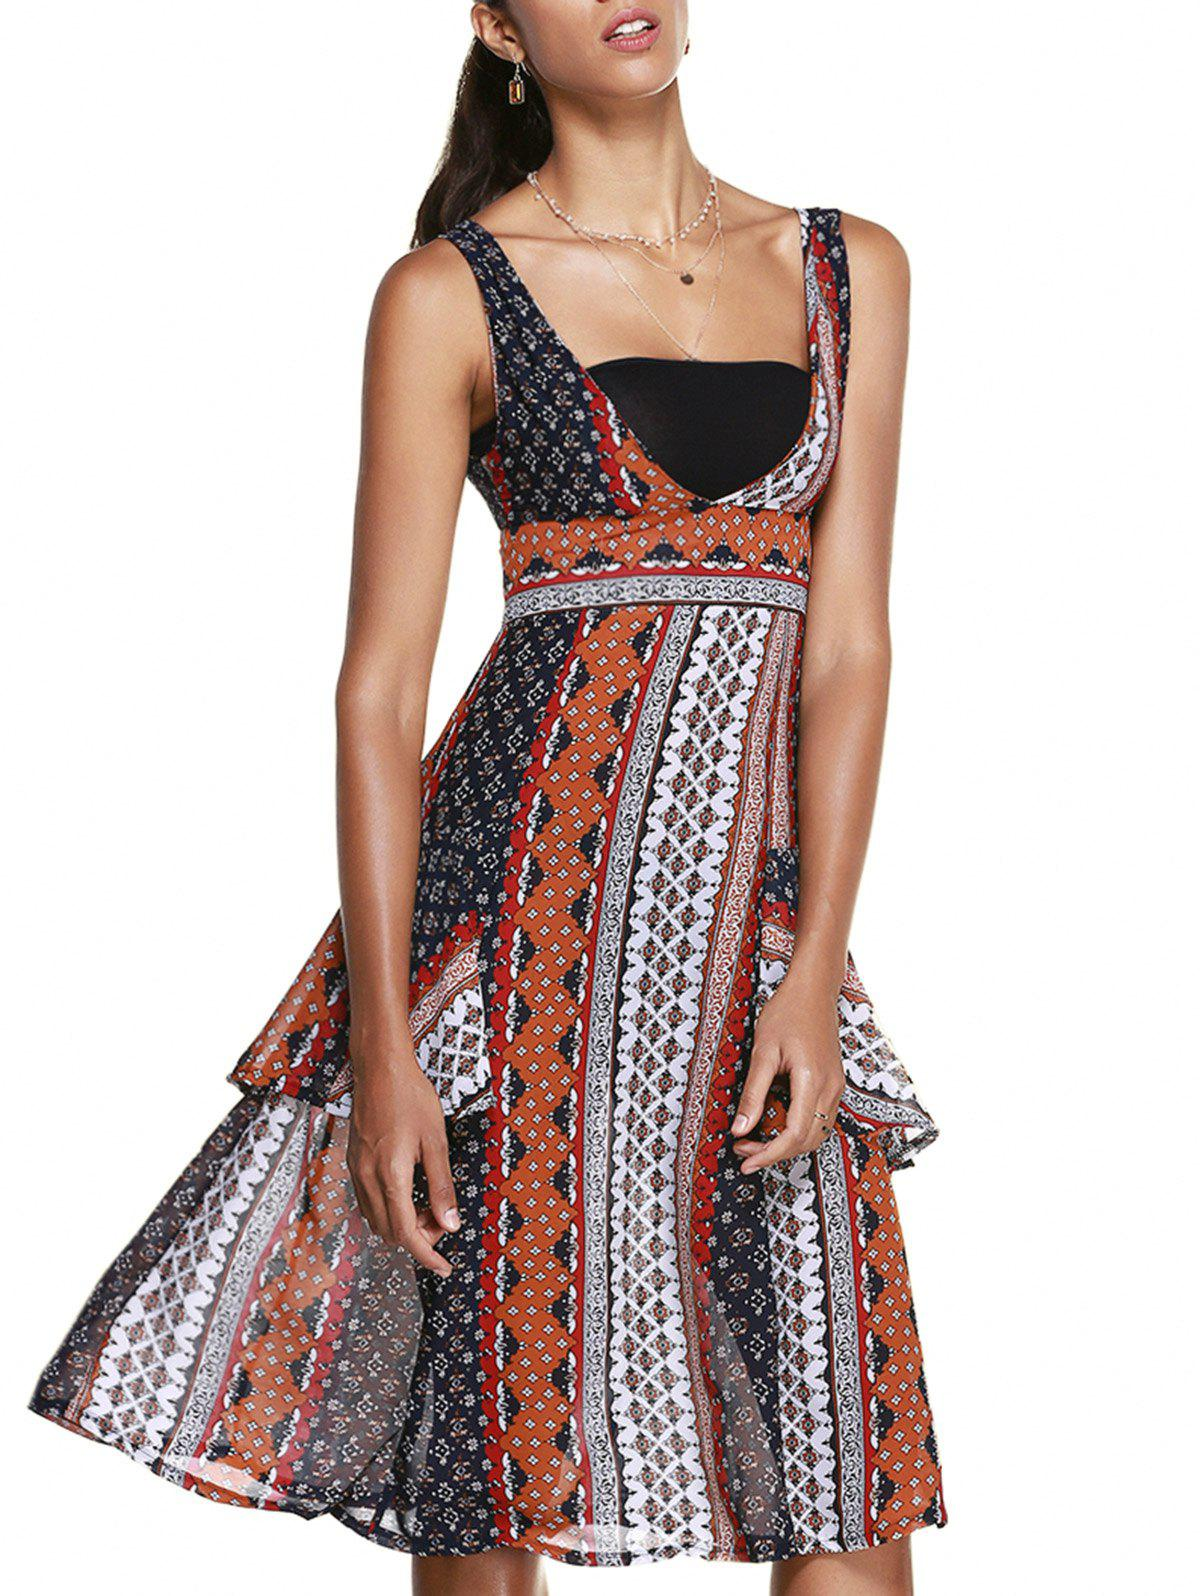 Women's Graceful Ethnic Print Sleeveless Dress - COLORMIX ONE SIZE(FIT SIZE XS TO M)